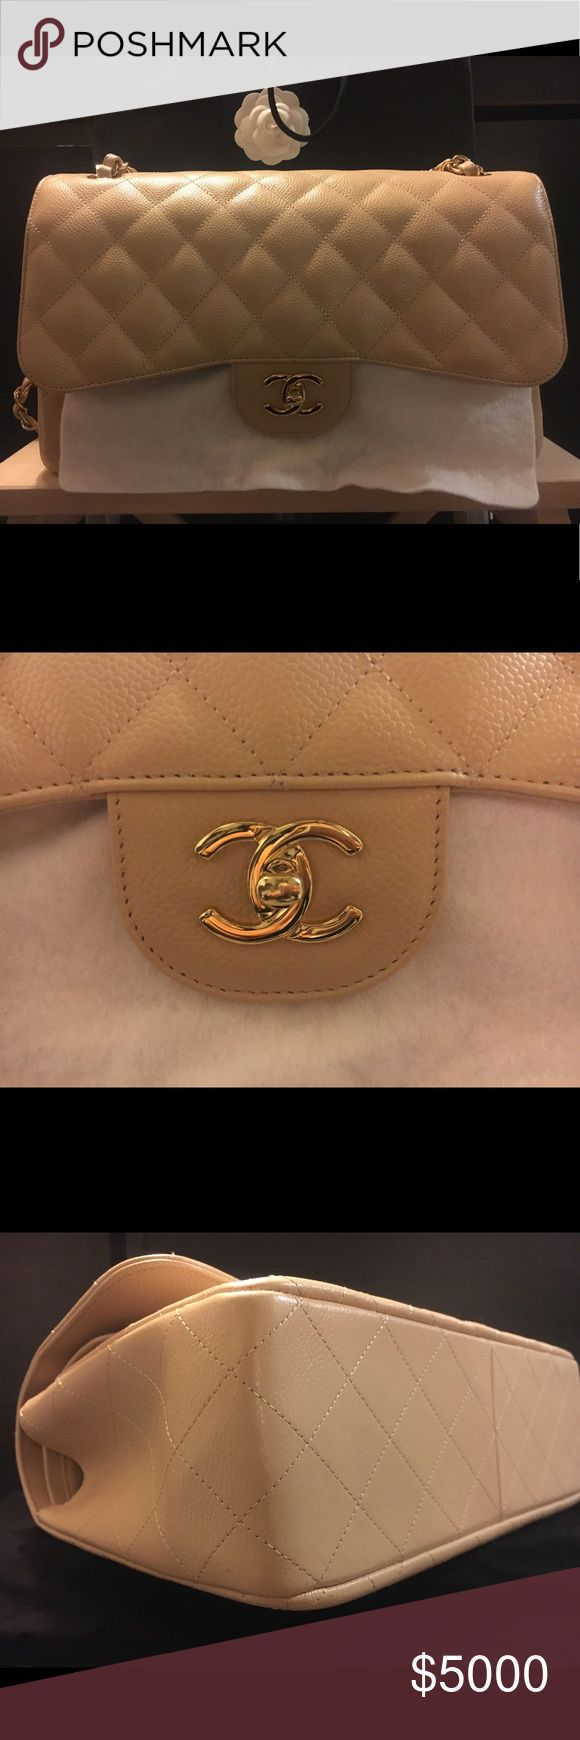 Chanel Classic Caviar Beige Gold Hardware Authentic Chanel Classic Jumbo Double Flap Caviar Beige color leather Gold Hardware and leather handles Comes with dust bag, authenticity card, Chanel original bag CHANEL Bags Shoulder Bags